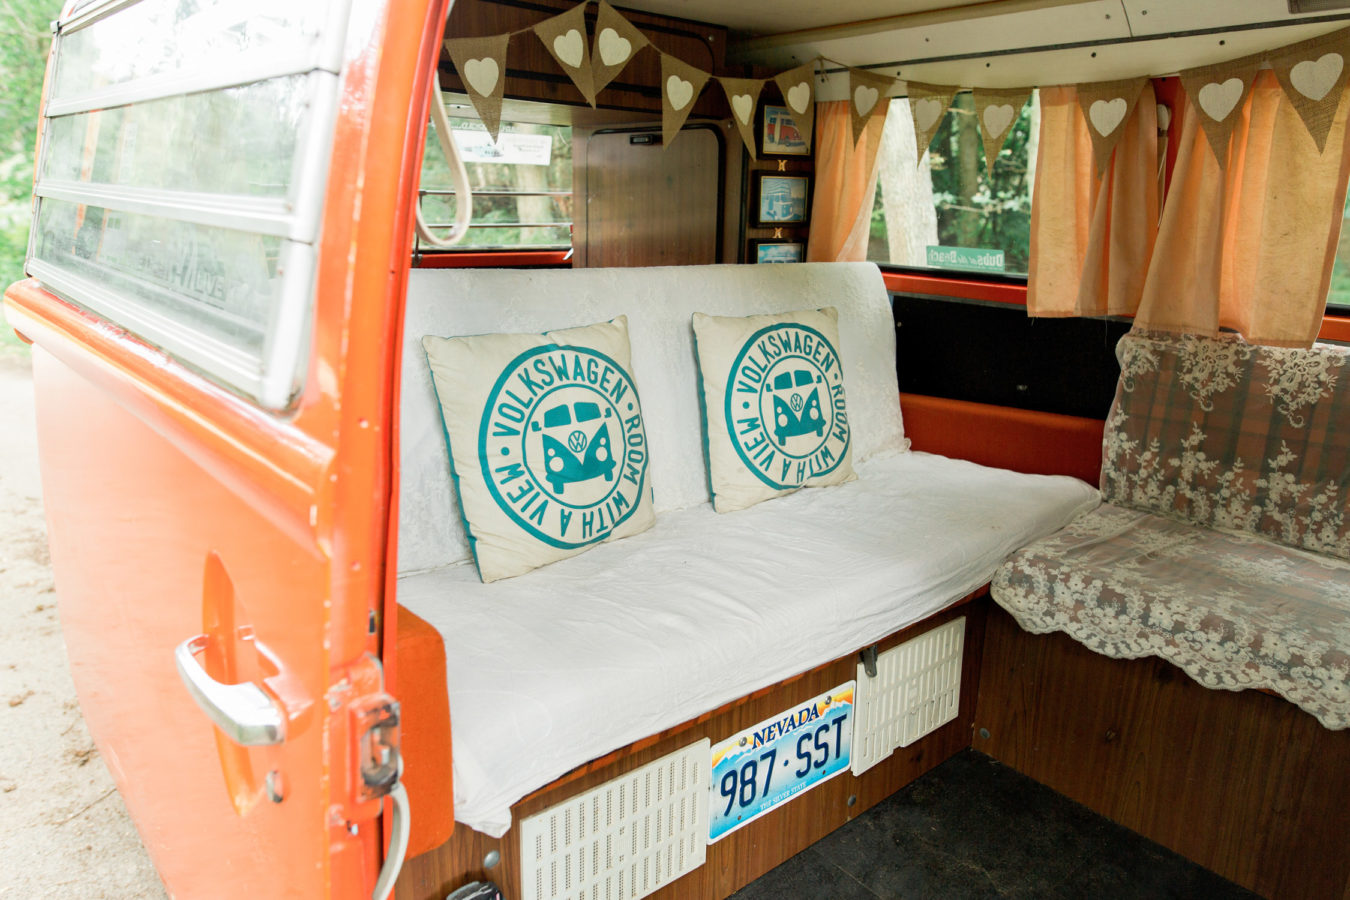 Wedding Hire VW Camper Van Wedding Transport interior